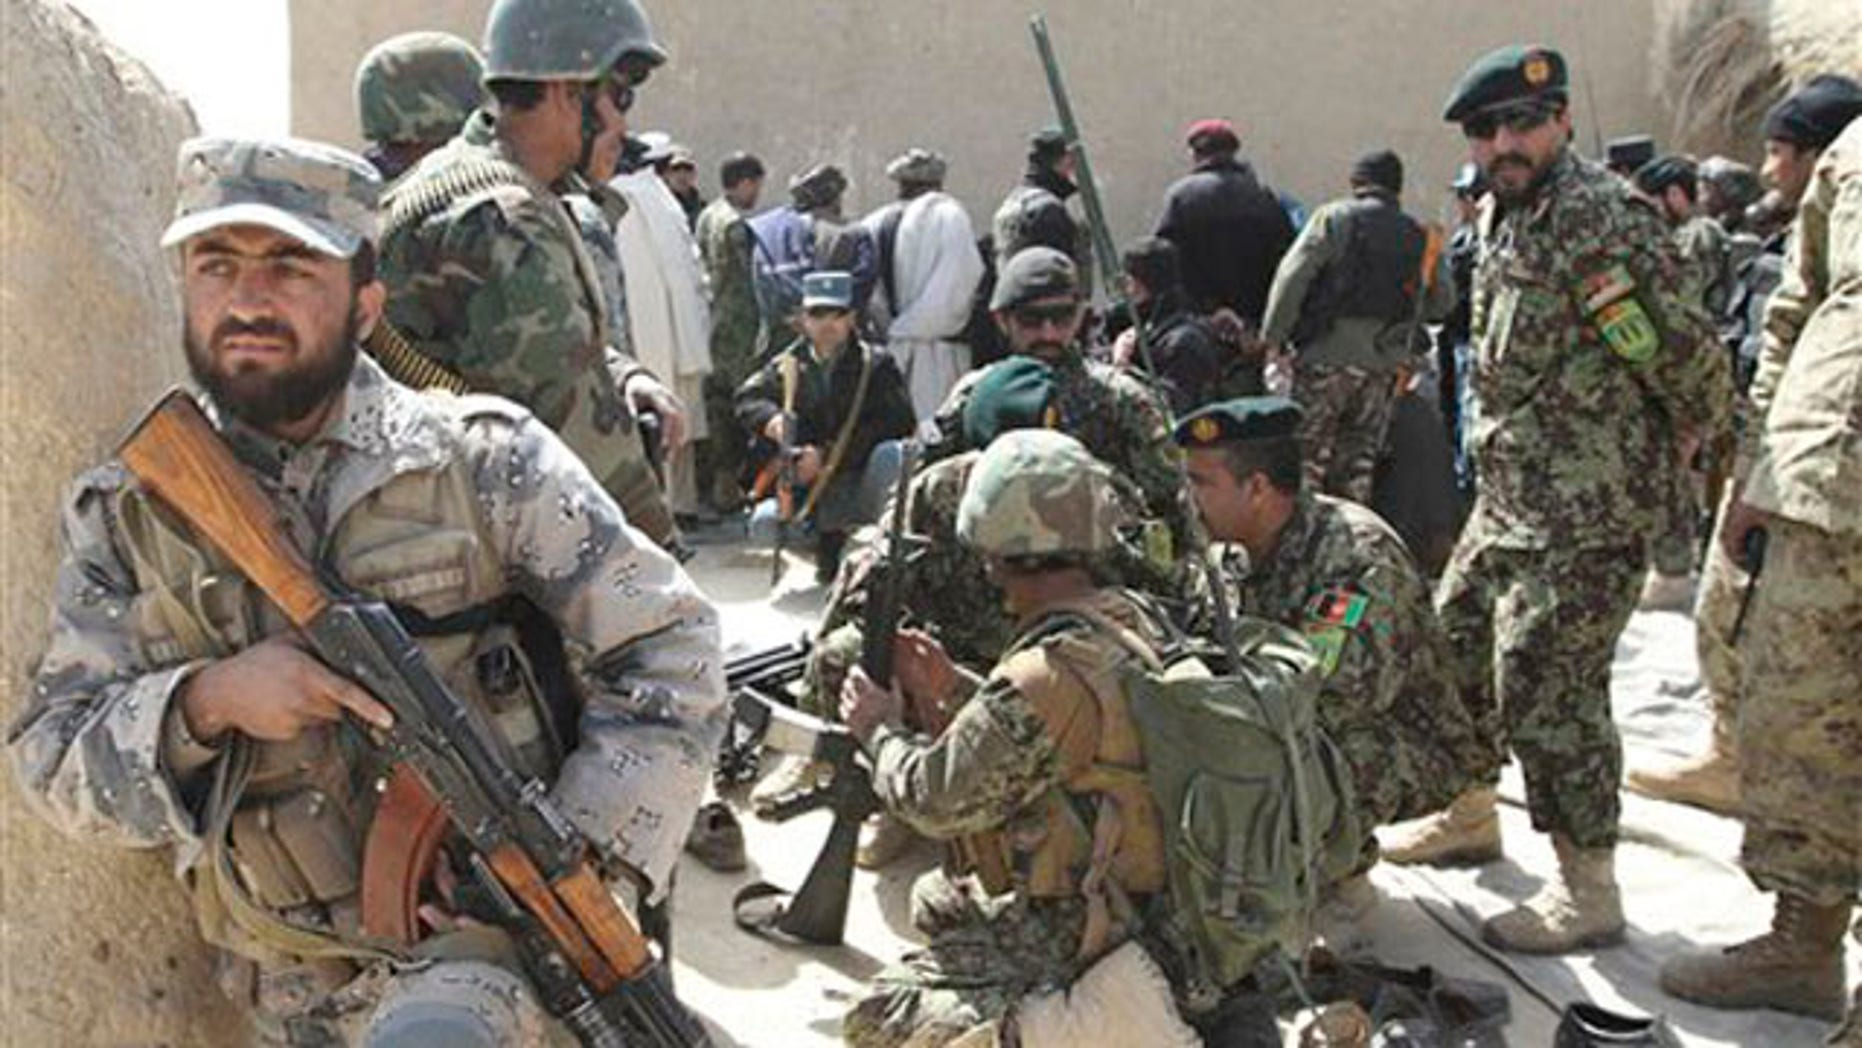 March 13, 2012: Afghan security forces are seen after Taliban militants opened fire on a delegation of senior Afghan officials in Panjwai, Kandahar province south of Kabul, Afghanistan.